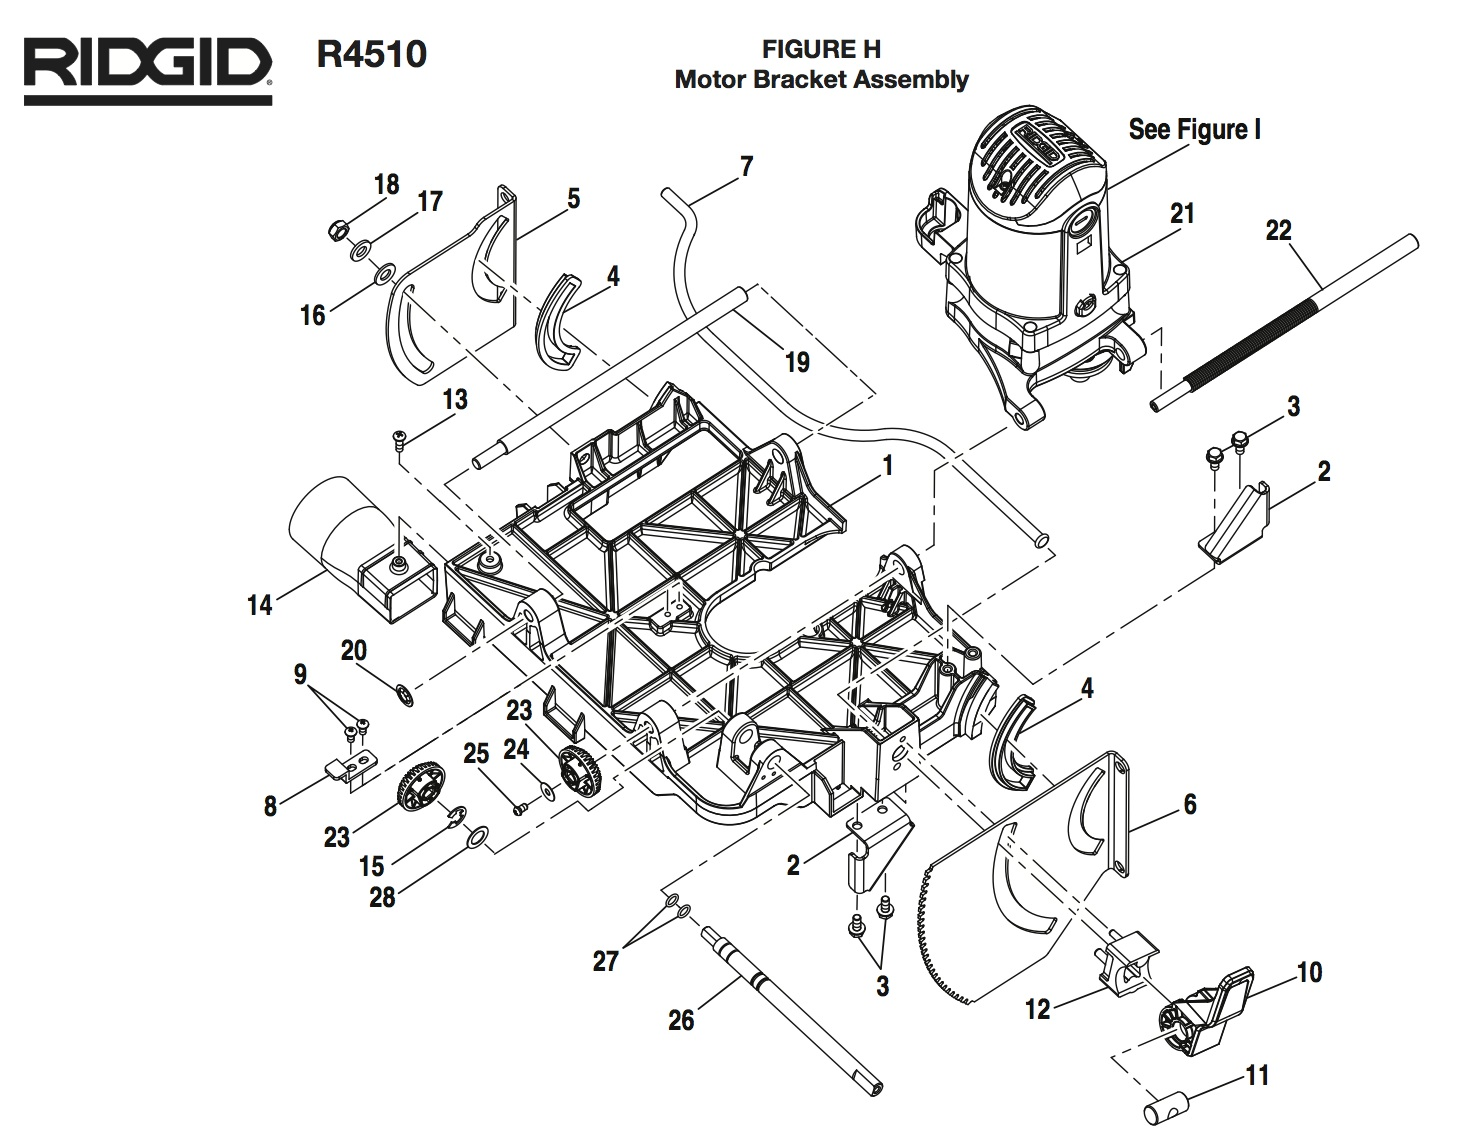 Ridgid R4510 Wiring Diagram. Ridgid. Just Another Wiring Site